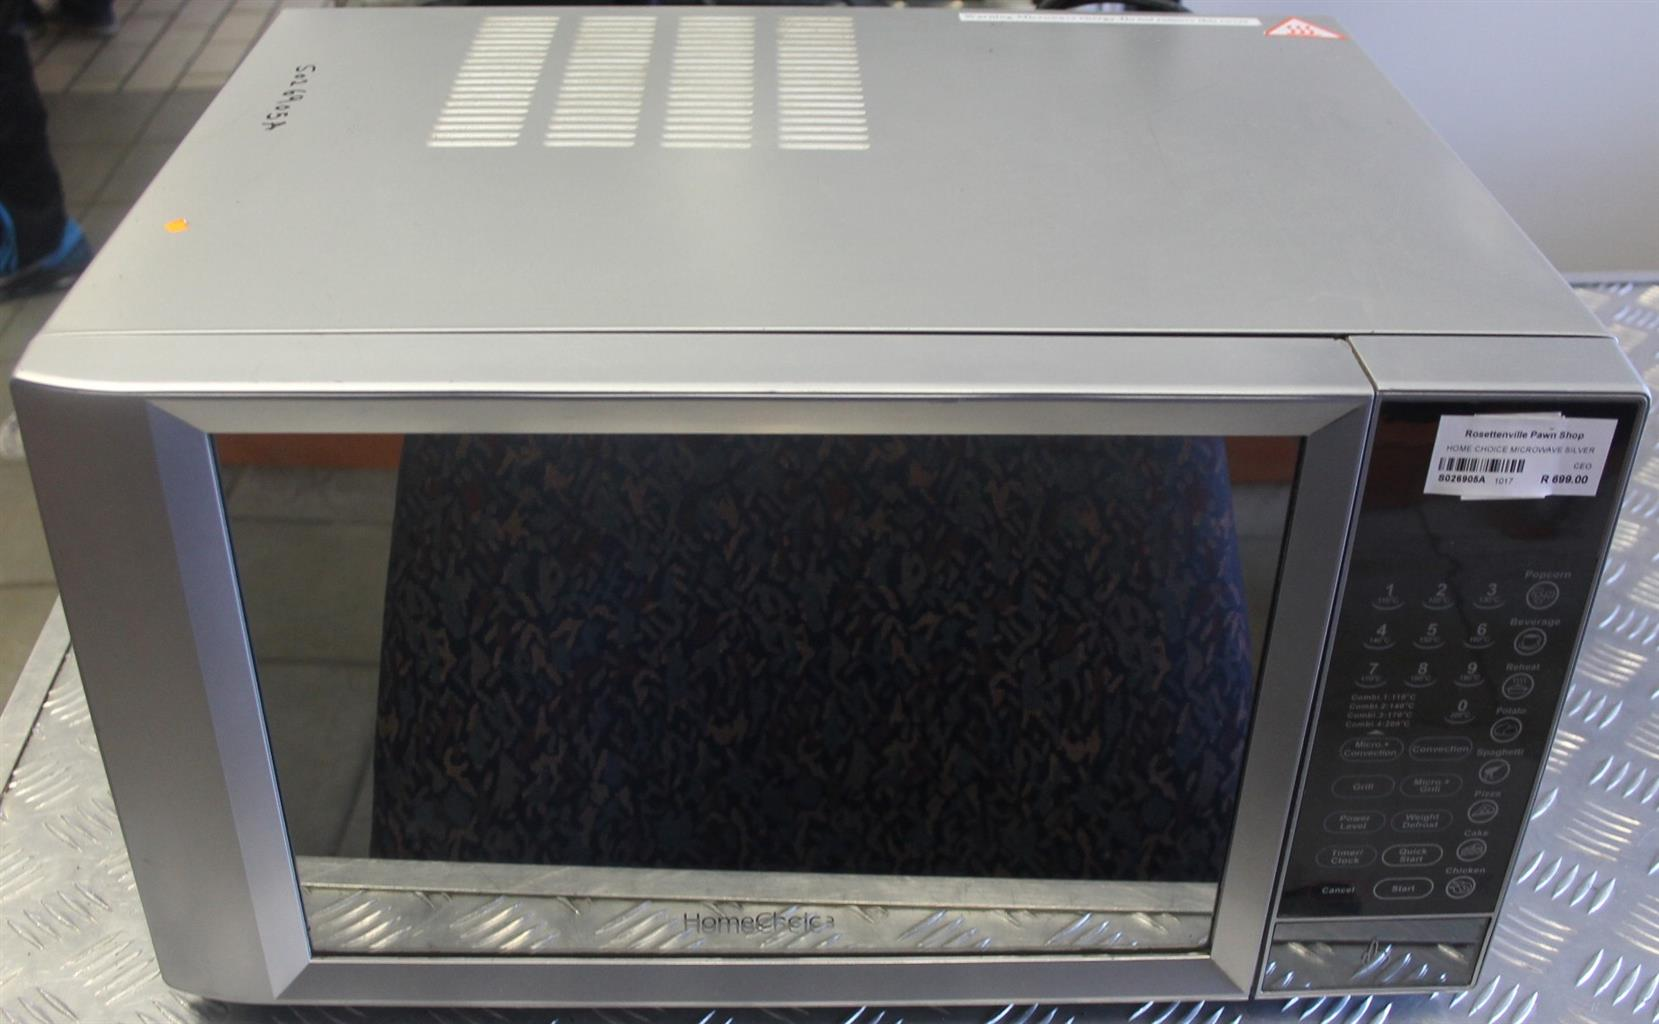 Home choice microwave S026805a  #Rosettenvillepawnshop